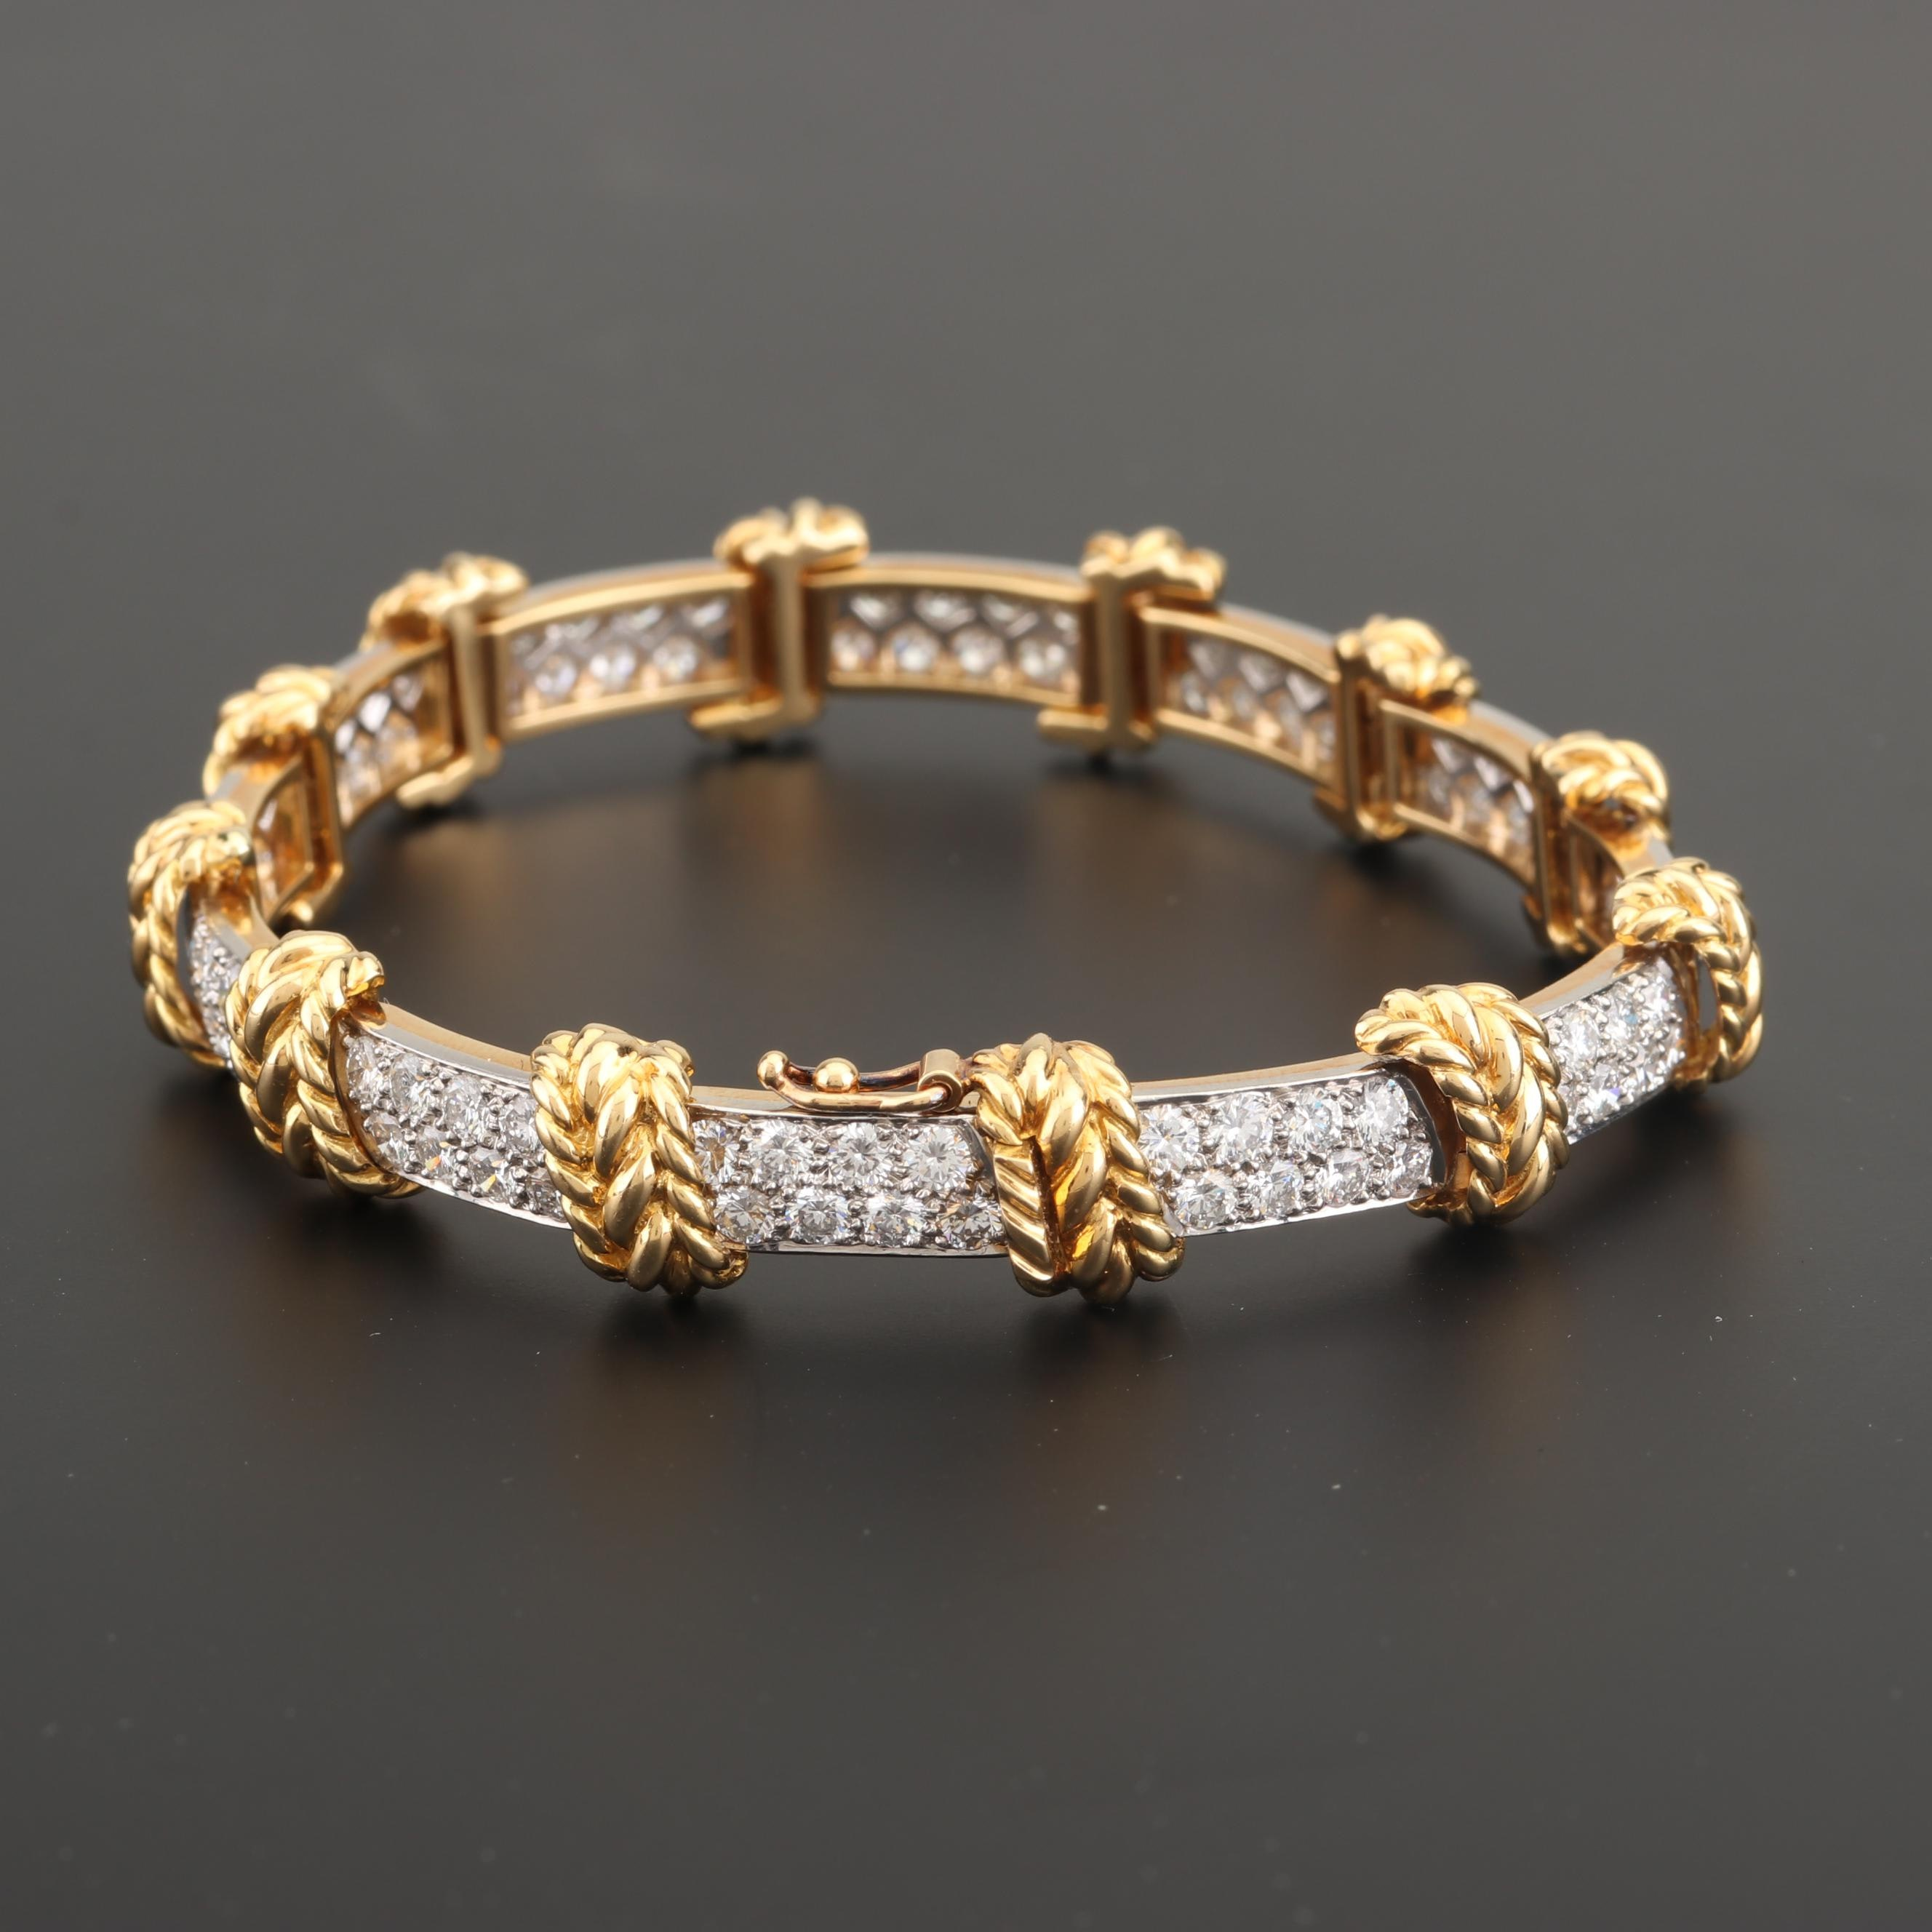 Tiffany & Co. Platinum and 18K Yellow Gold 7.00 CTW Diamond Bracelet